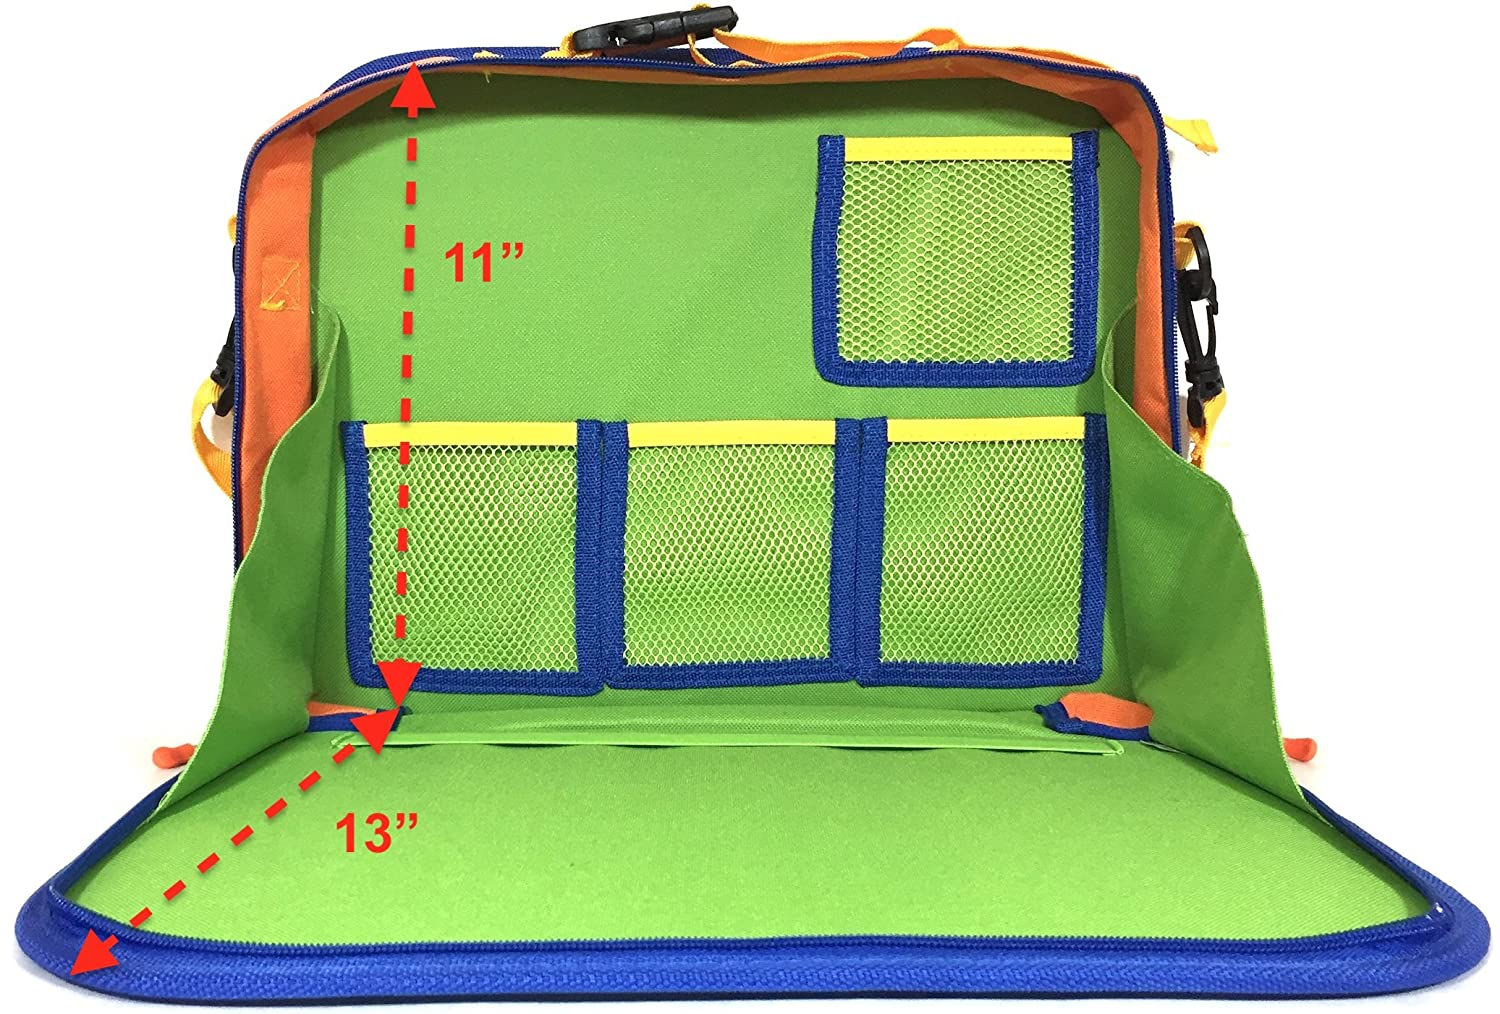 My Specialty Shop K001-16 Great for Road Trips and Travel used as a Lap Tray Writing Surface or as Access to Electronics for Kids Age 3 Kids Backseat Travel Tray Organizer Holds Crayons Markers an iPad Kindle or Other Tablet